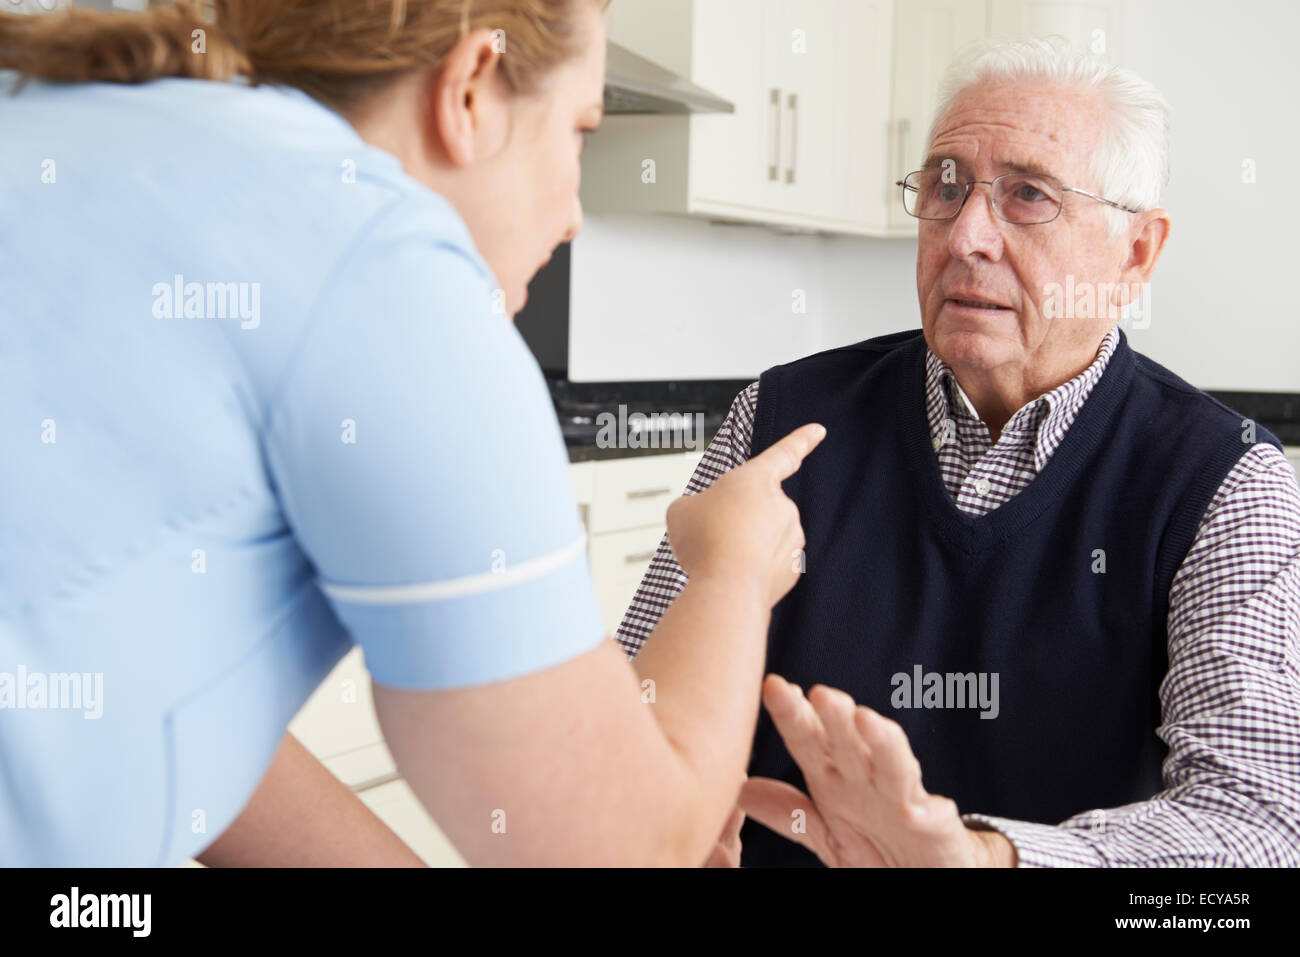 Care Worker Mistreating Elderly Man - Stock Image